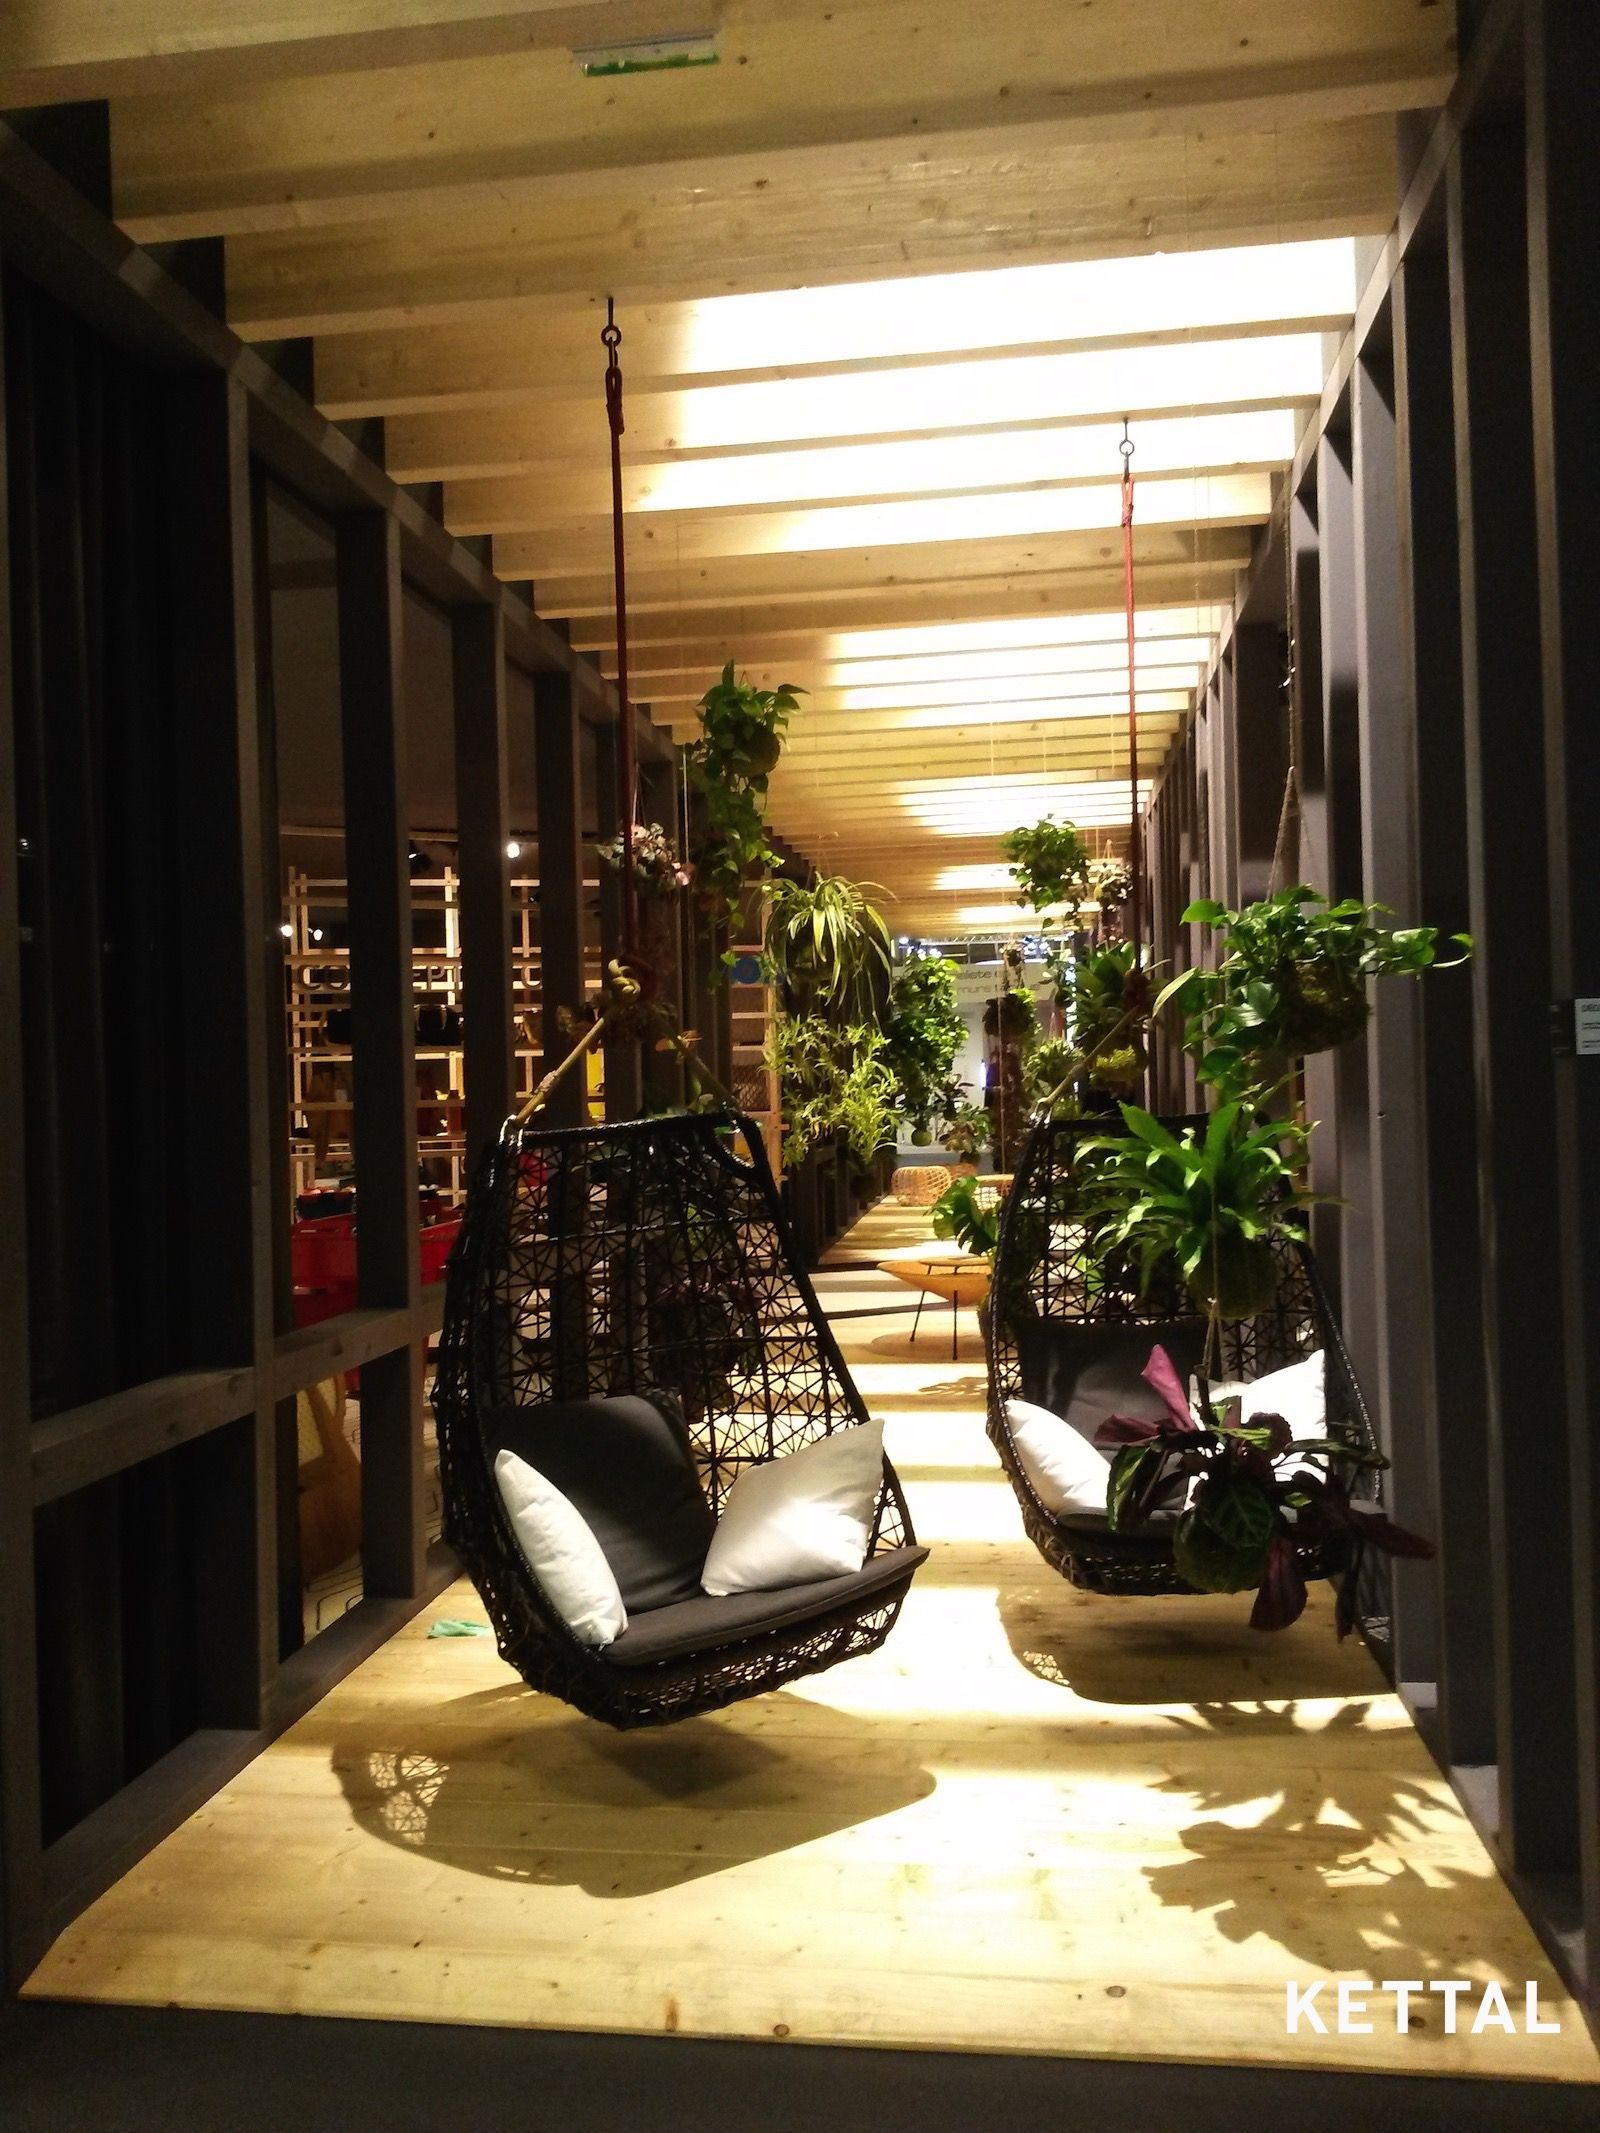 Hotel Gallery @Equip'Hotel 2014 Kettal products, Basket, Maia.. Let's go! #urquiola #ditzel @Equiphotelparis #paris #design #innovation #equiphotel #design #outdoor #furniture #indoor #new #contract #resort #mobilier #hospitality #tradehair #chair